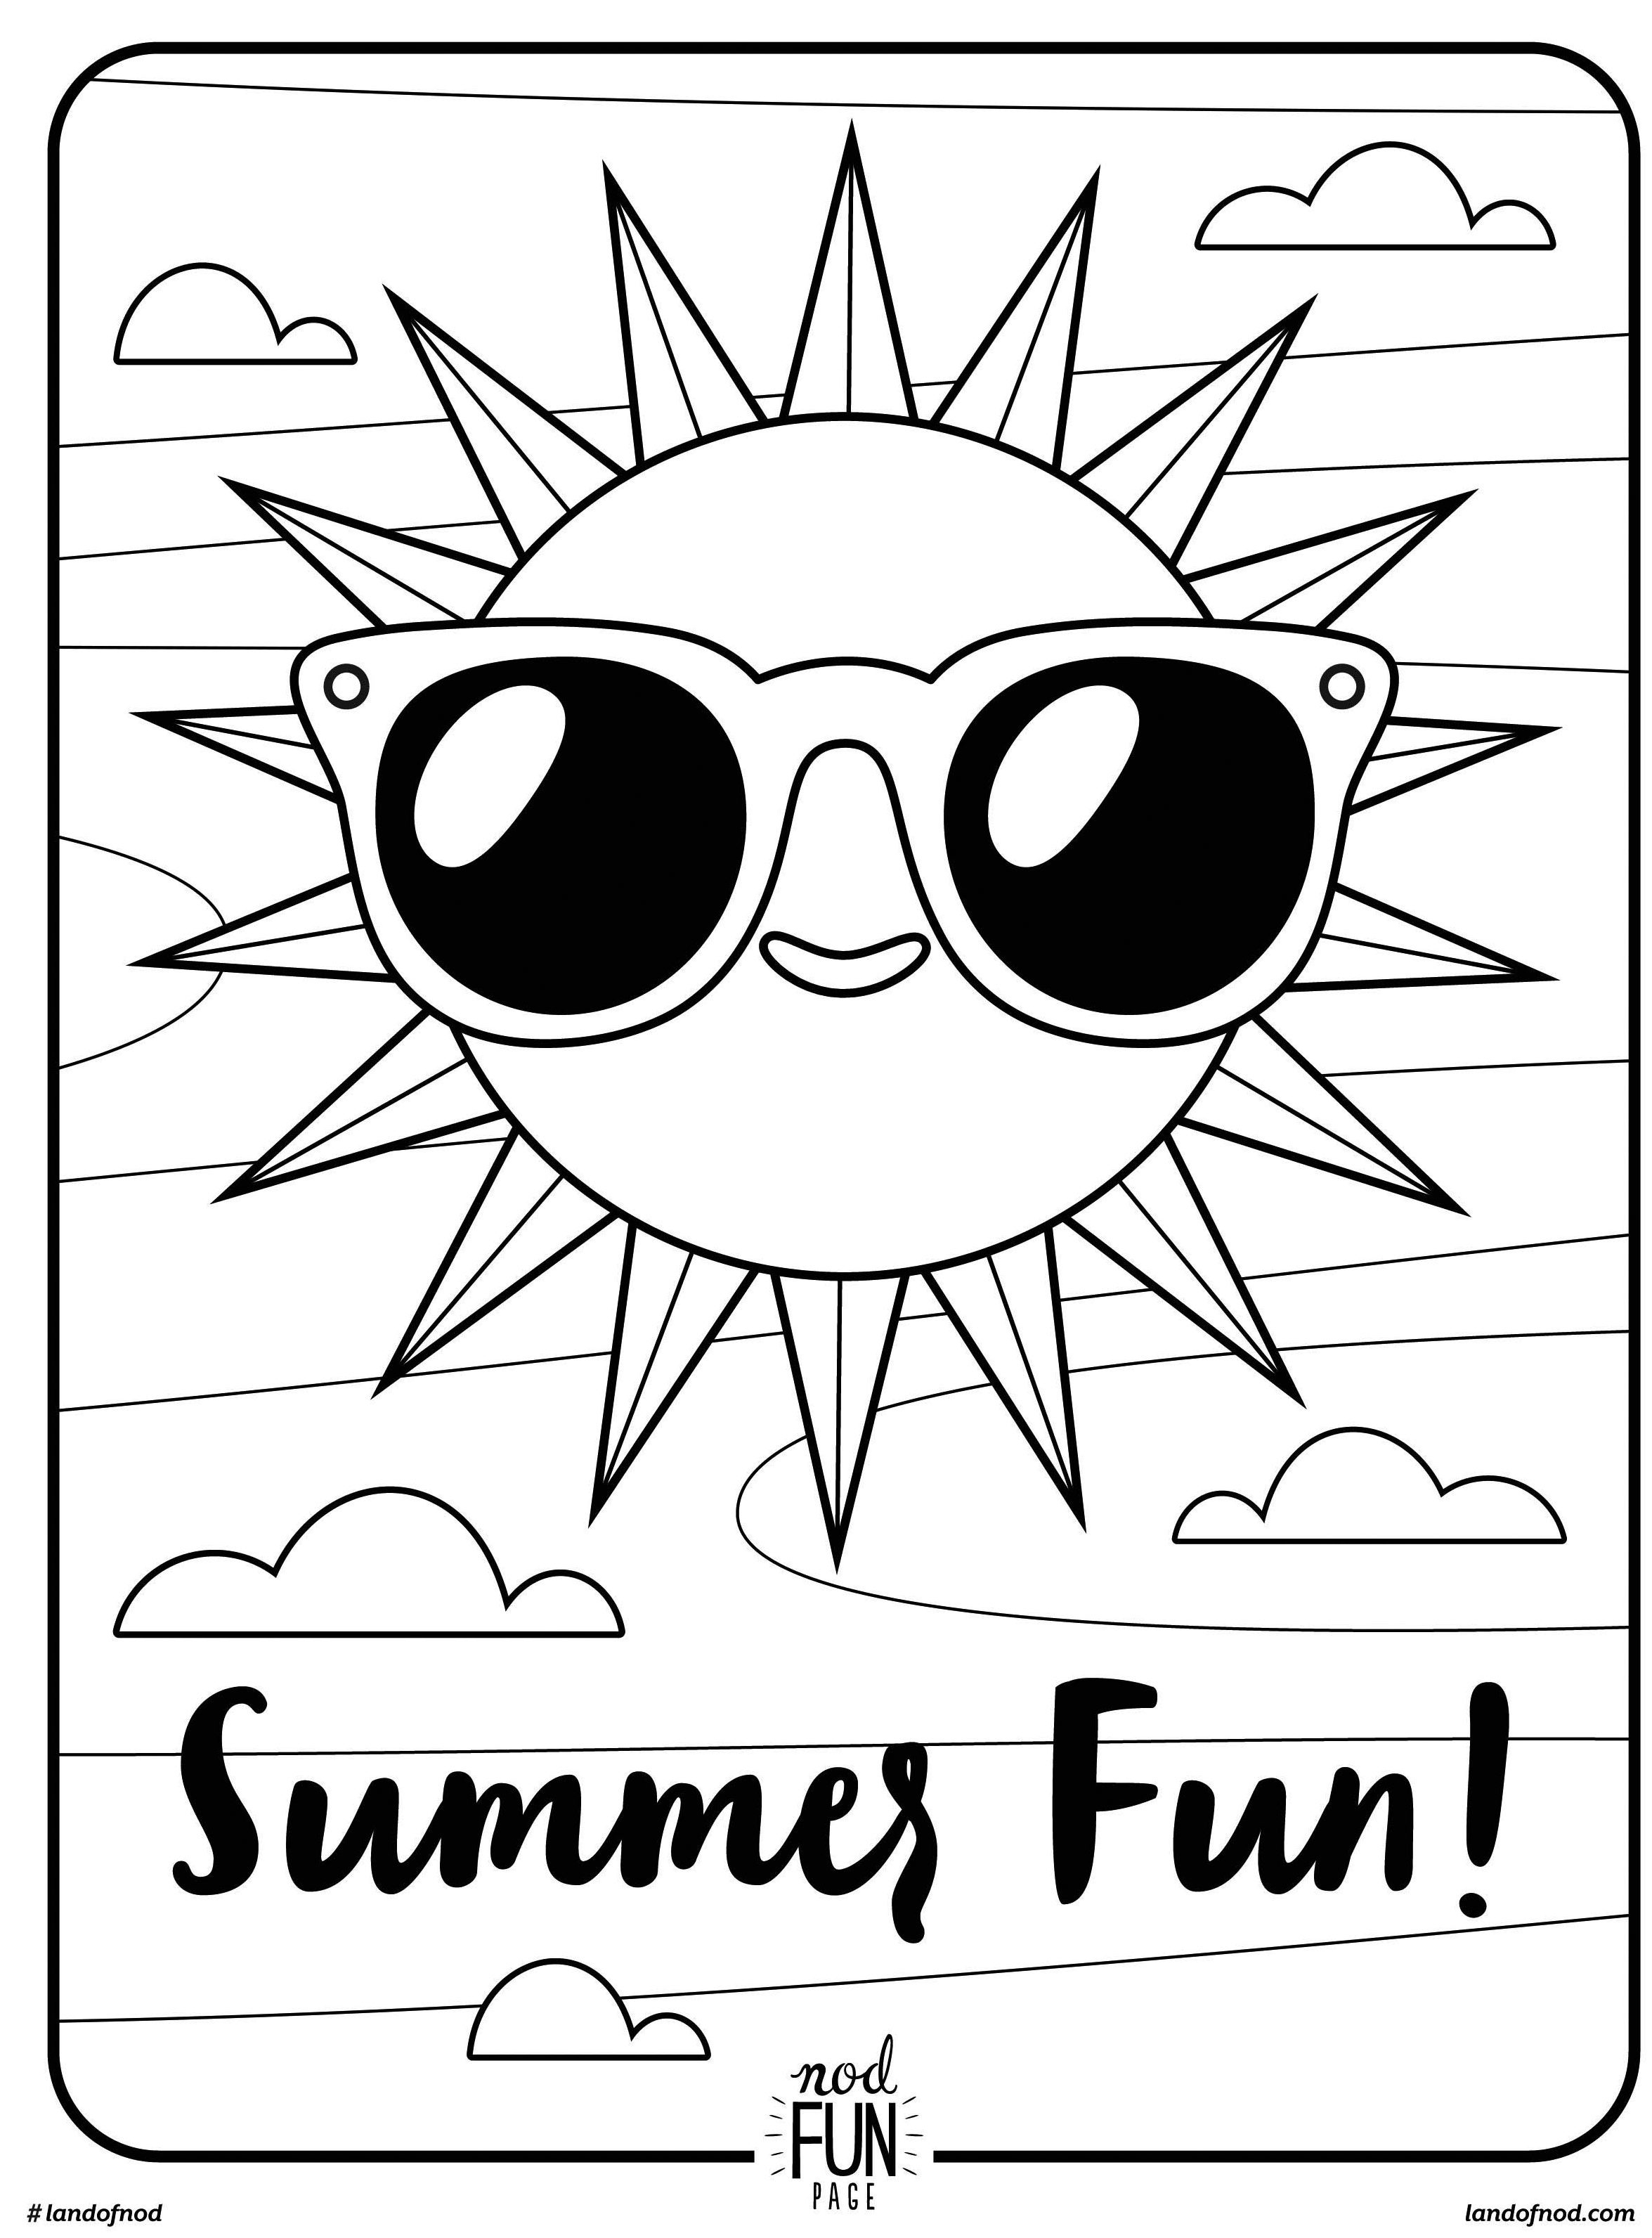 Coloring Pages : Fun Printable Coloring Pages For Kids Animals Girls - Free Printable Summer Coloring Pages For Adults